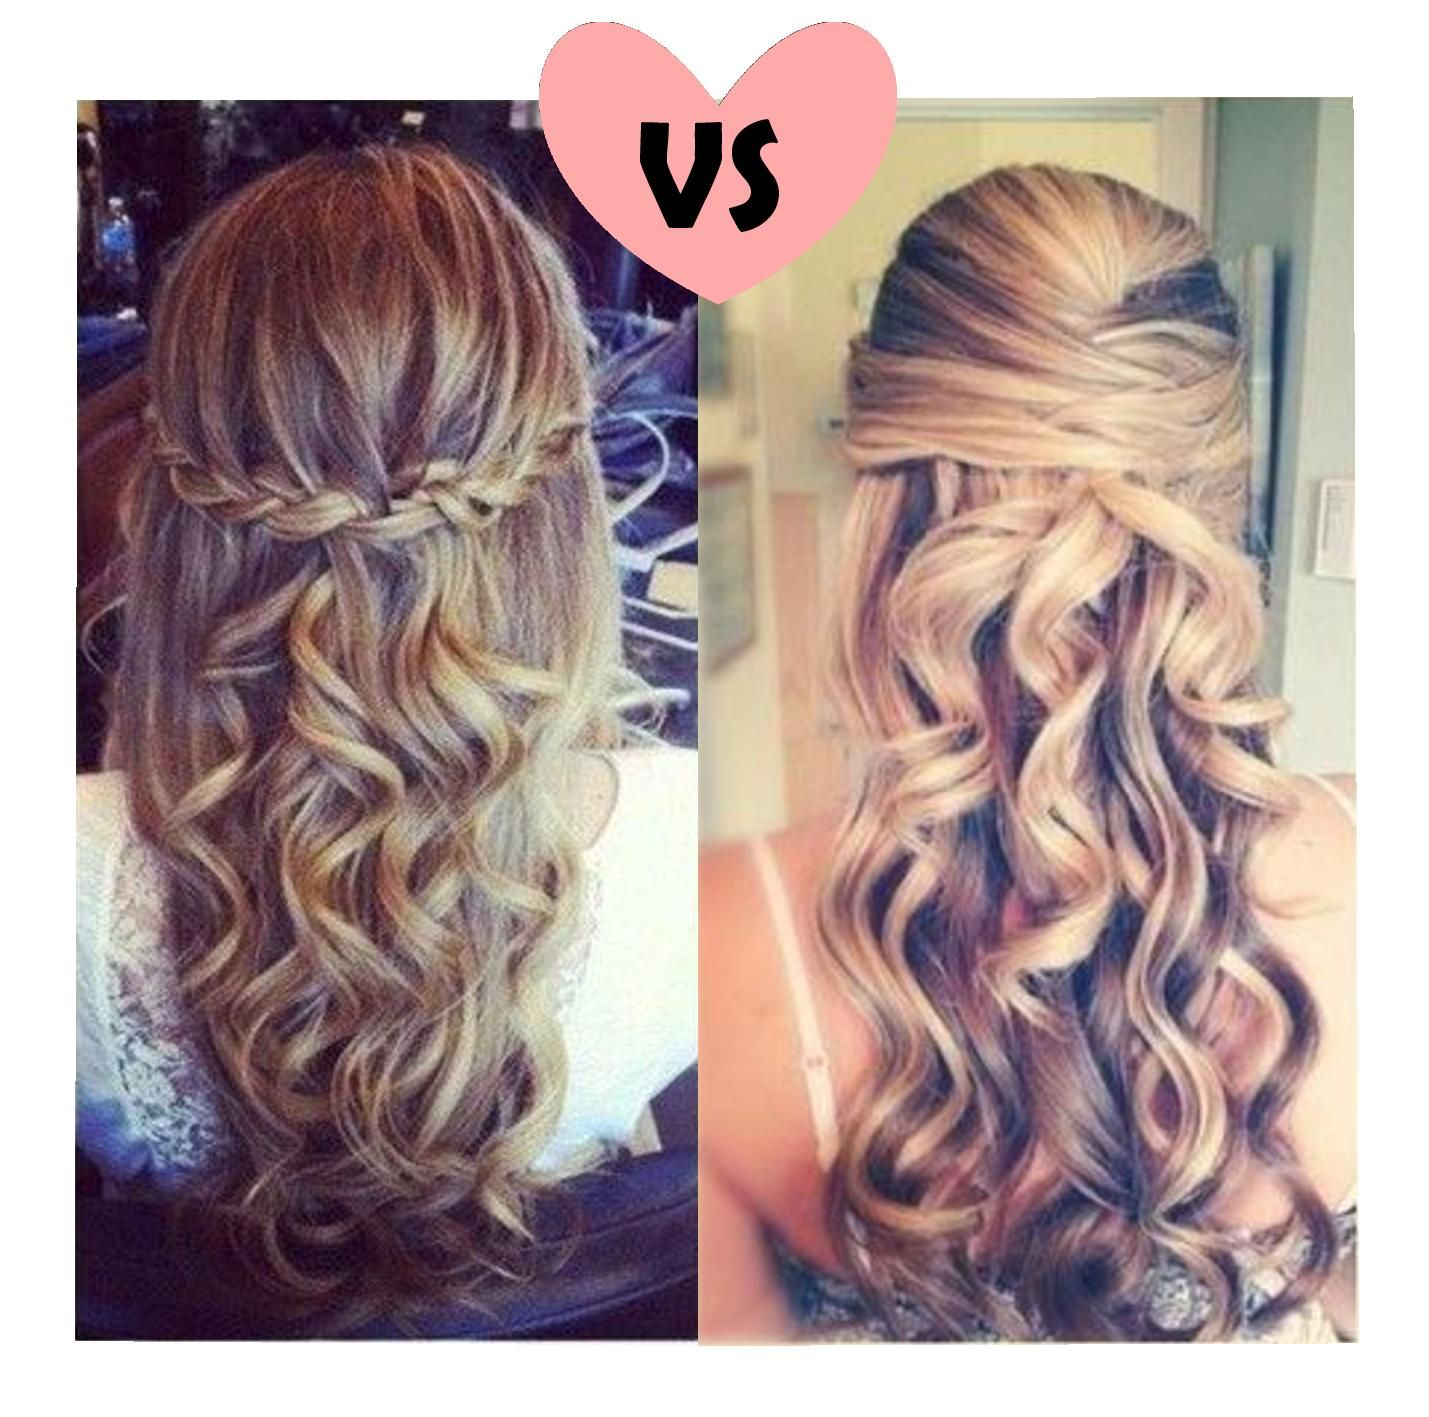 Cute Hairstyles For Prom elstile wedding hairstyles for long hair Homecoming Or Prom Hairstyles